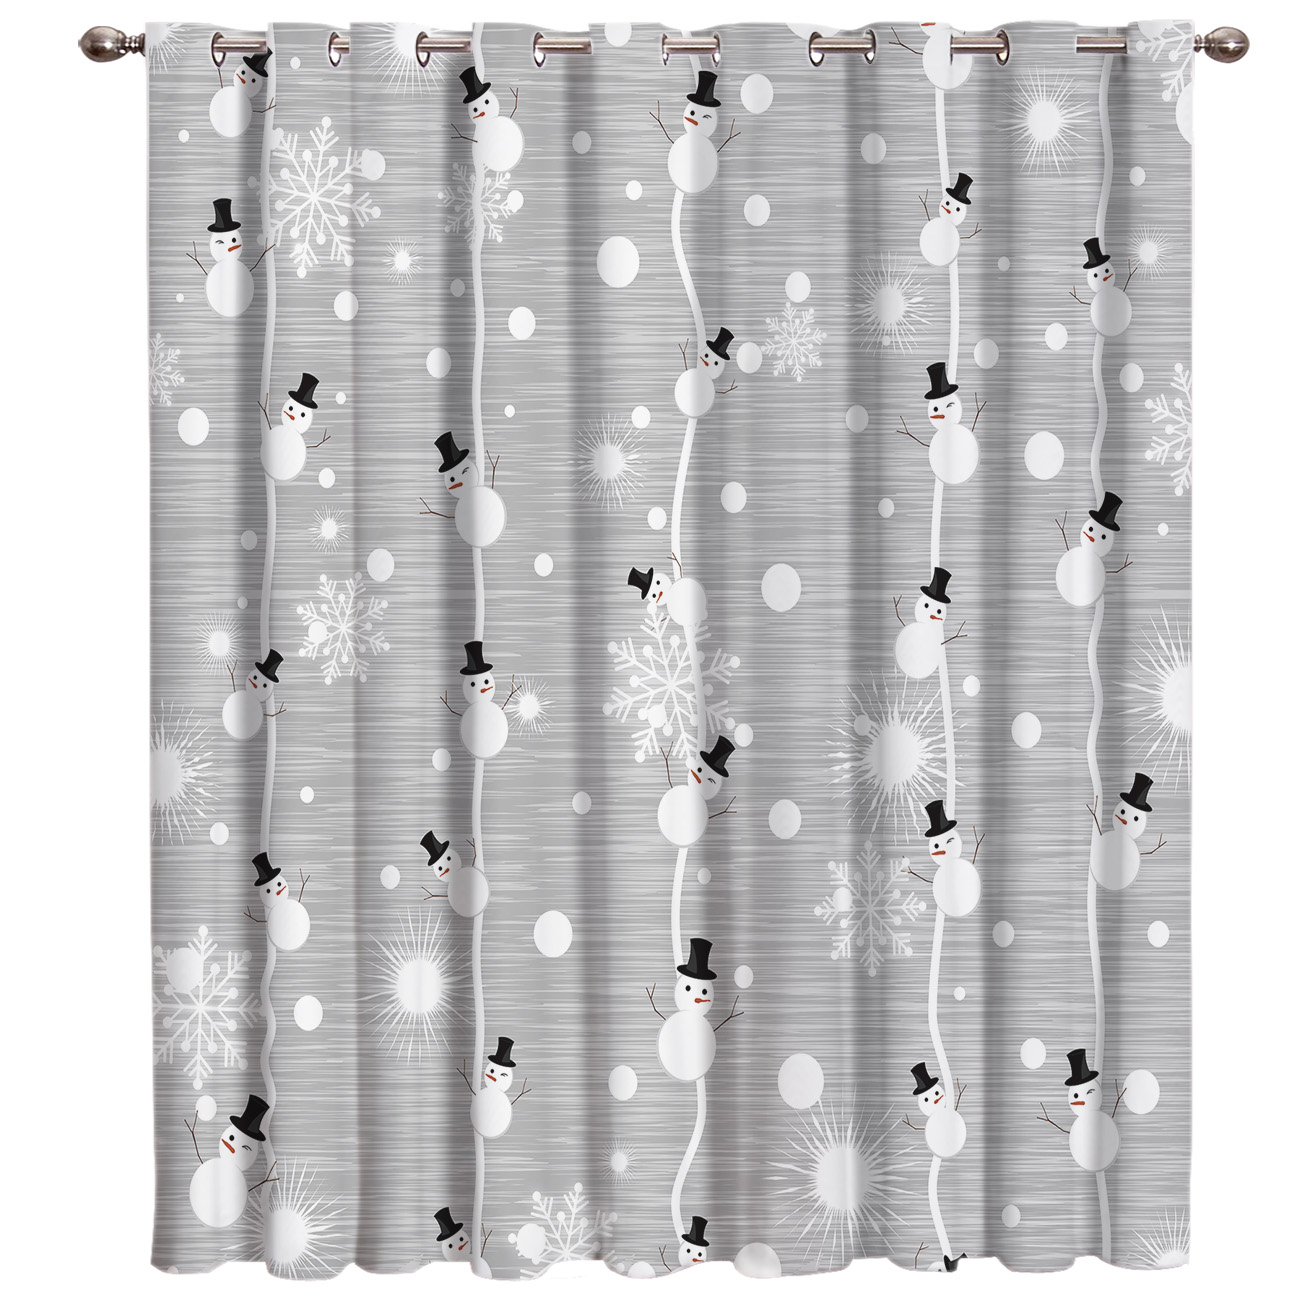 Grey Christmas Snowman Dots Room Curtains Large Window Window Blinds Bathroom Decor Indoor Decor Kids Swag Window Treatment